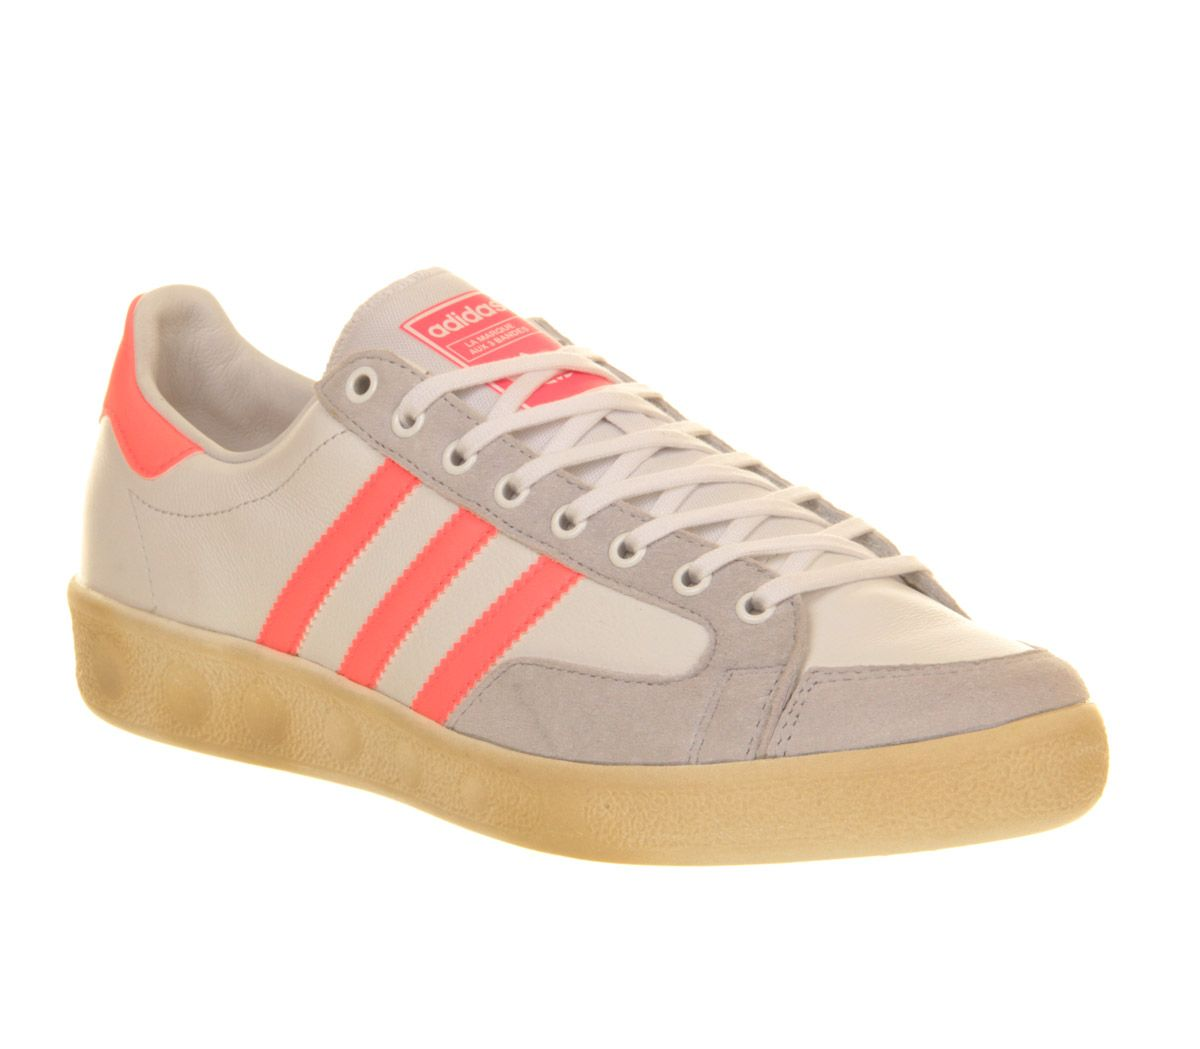 cheap for discount 2e387 00203 Adidas Nastase Master Vintage White Pink Zest - His trainers